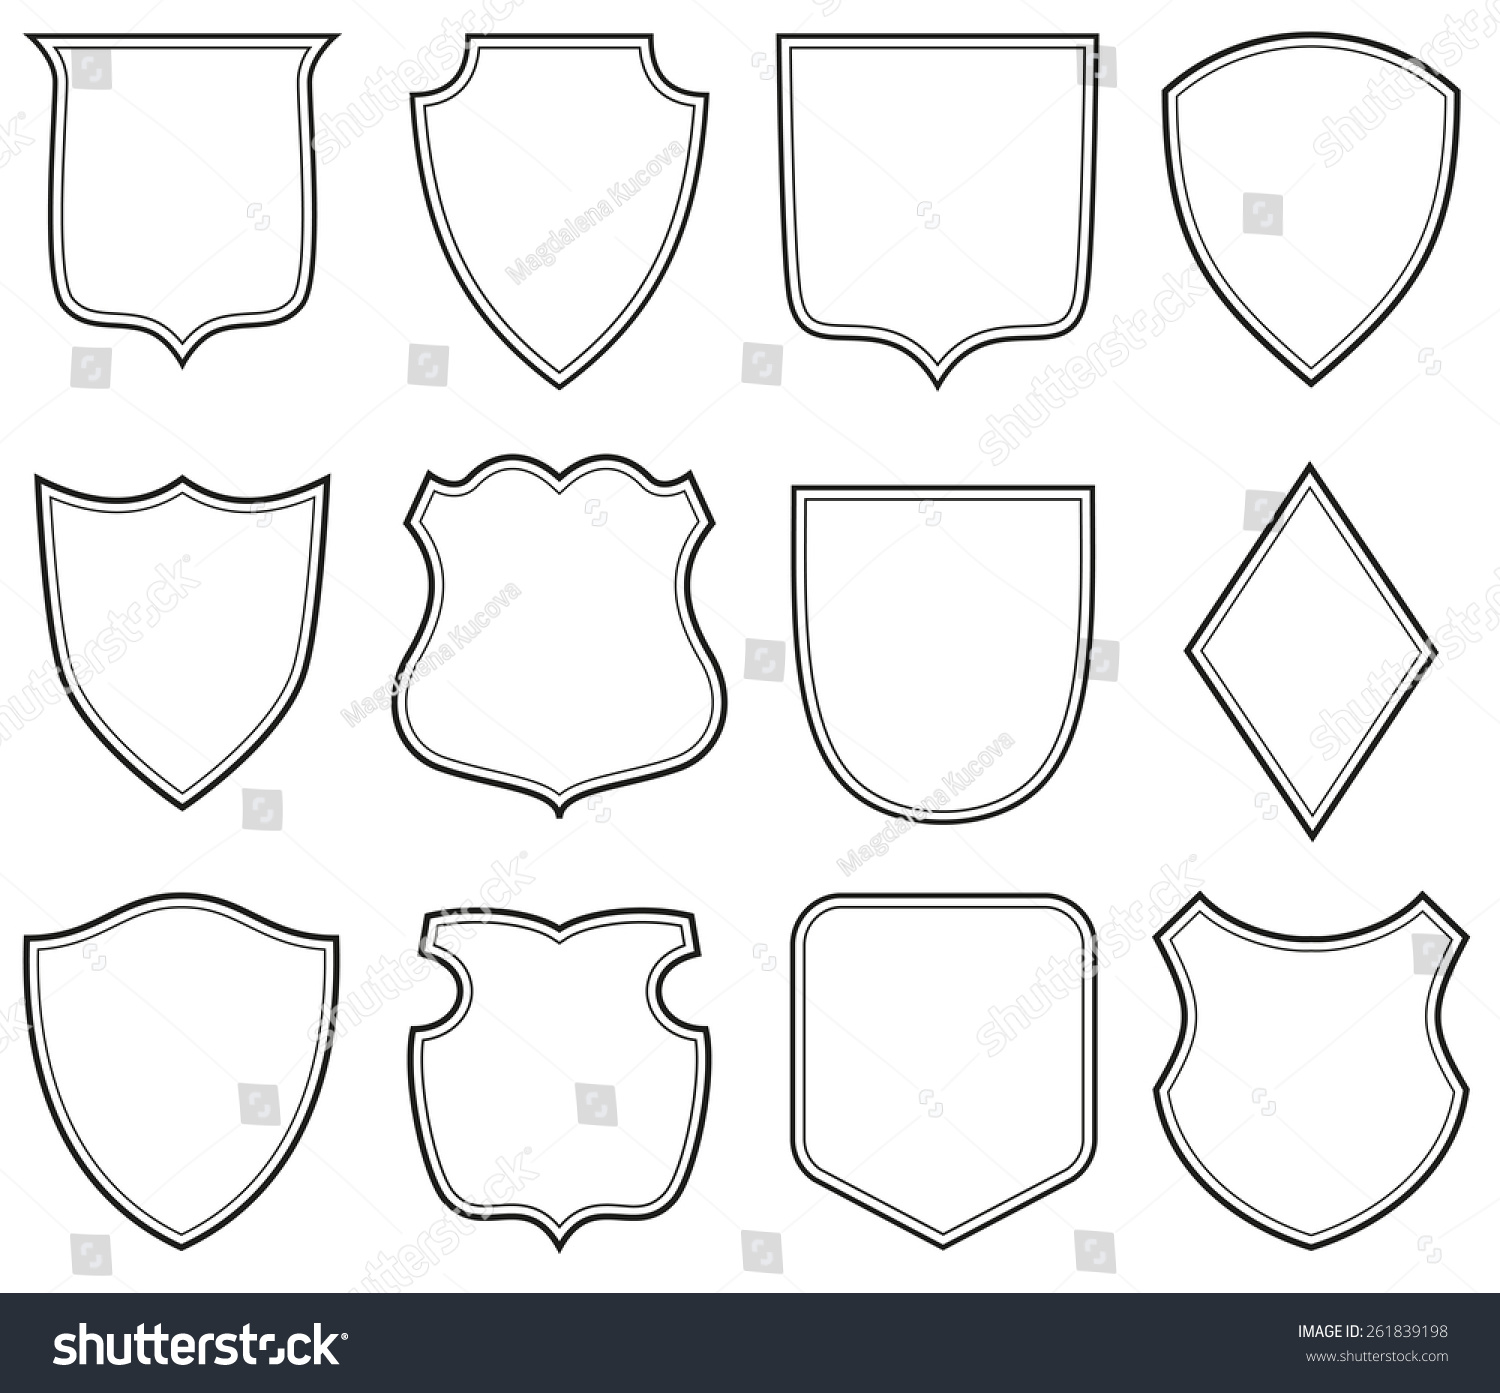 Collection Heraldic Shield Shapes Stock Vector 261839198 - Shutterstock